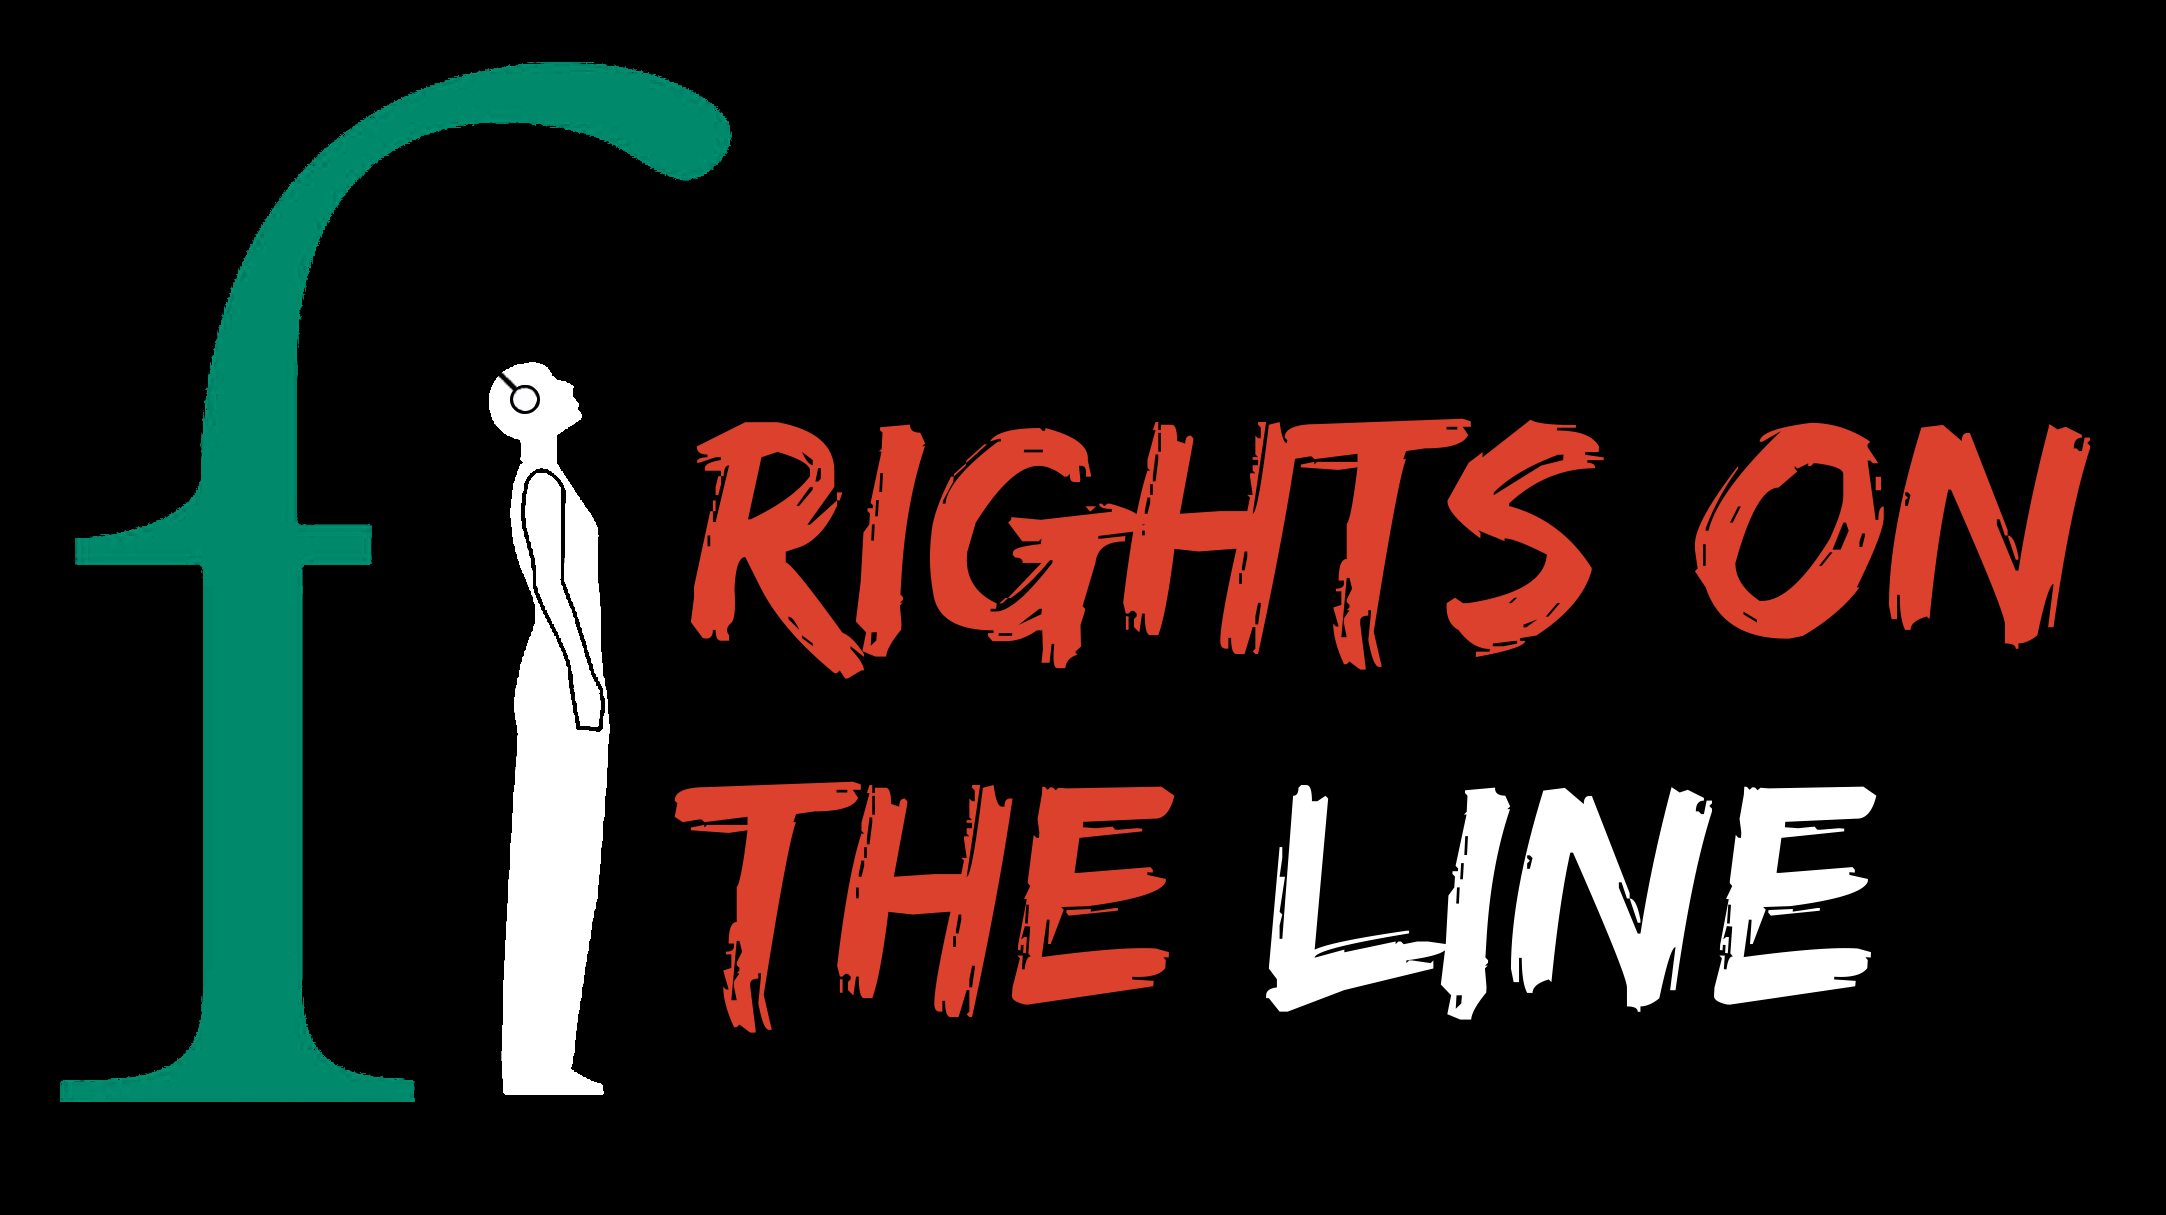 rights_on_the_line_logo_black.jpeg